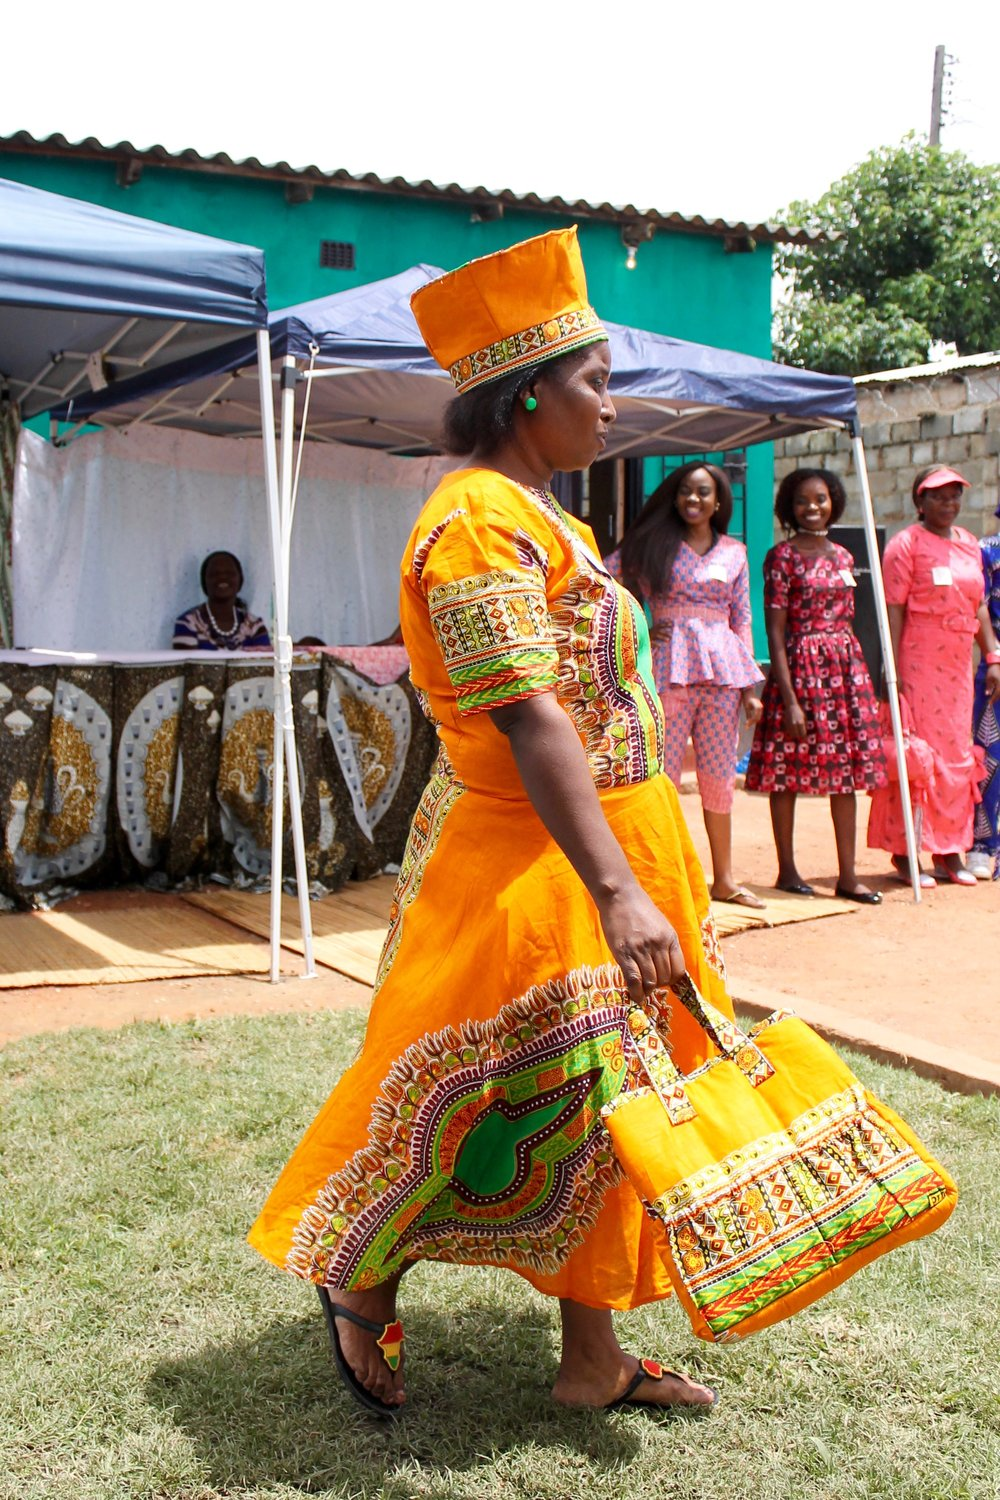 Gladys' head-to-toe ensemble gets quite the reaction from the crowd. Matching purse, a-line dress, and traditional hat in a beautiful traditional chitenge fabric.